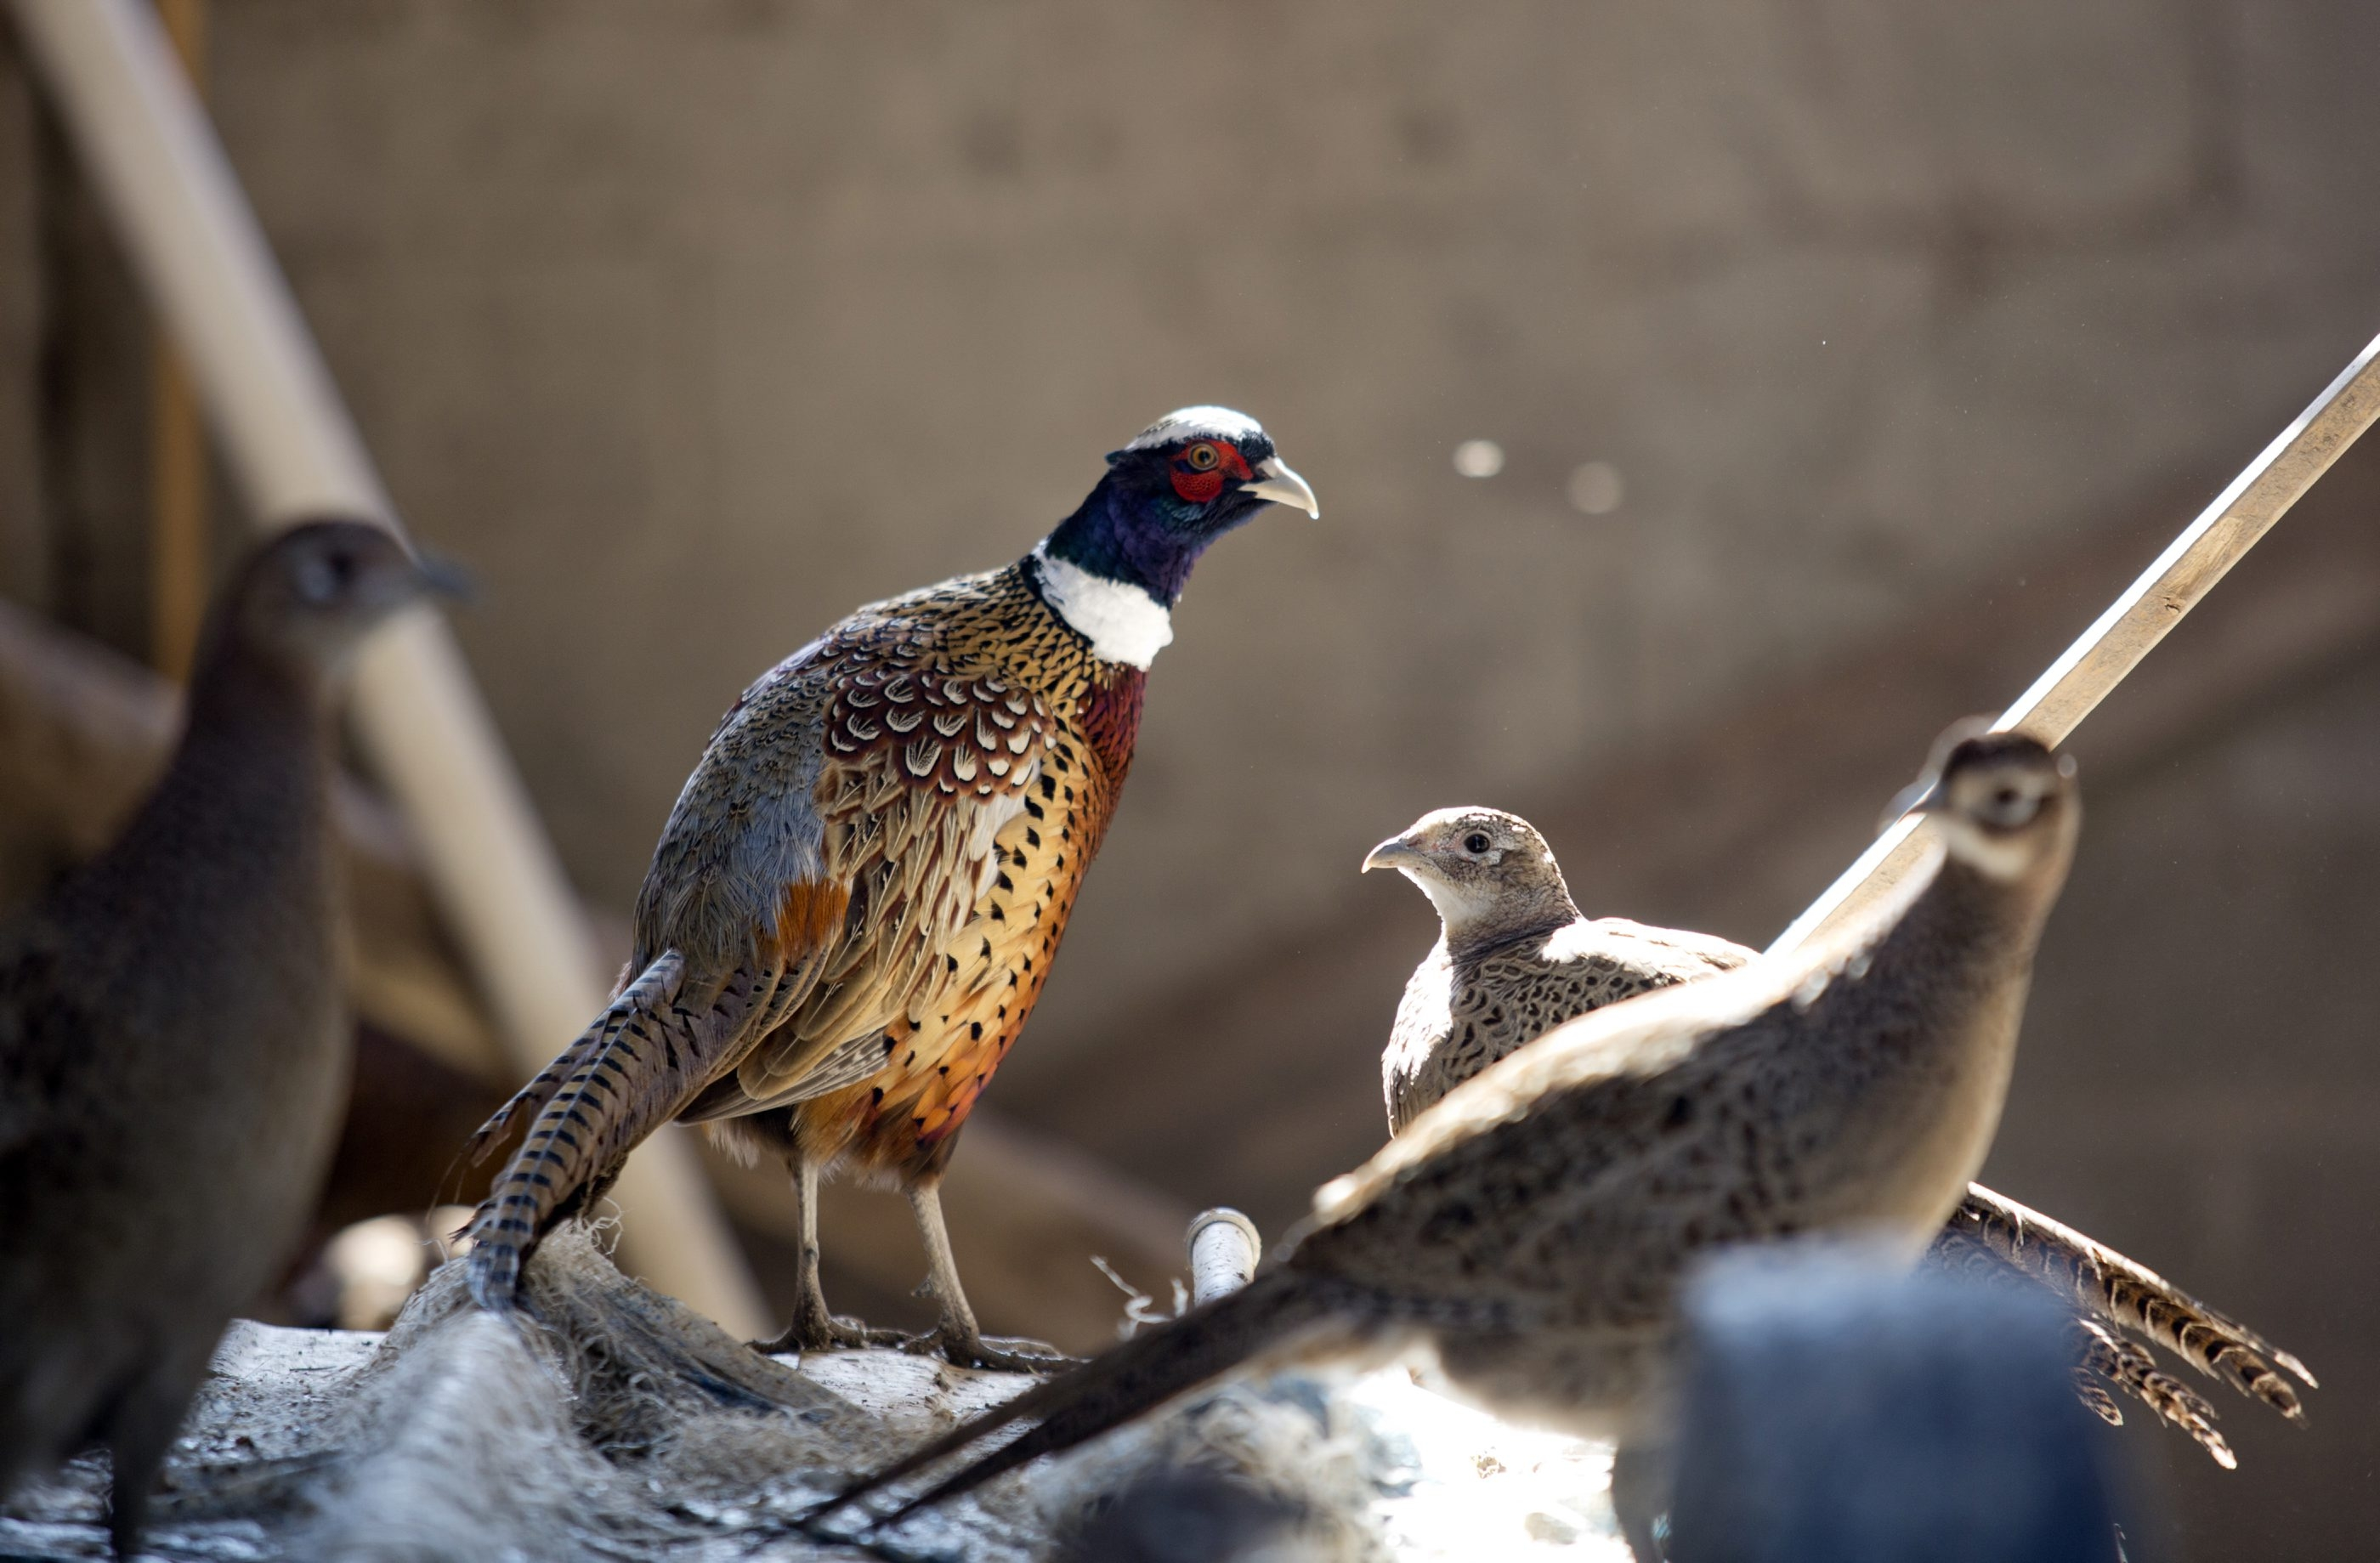 Pheasants, once common in the Hamburg survey, are now rarely sighted in the bird count.